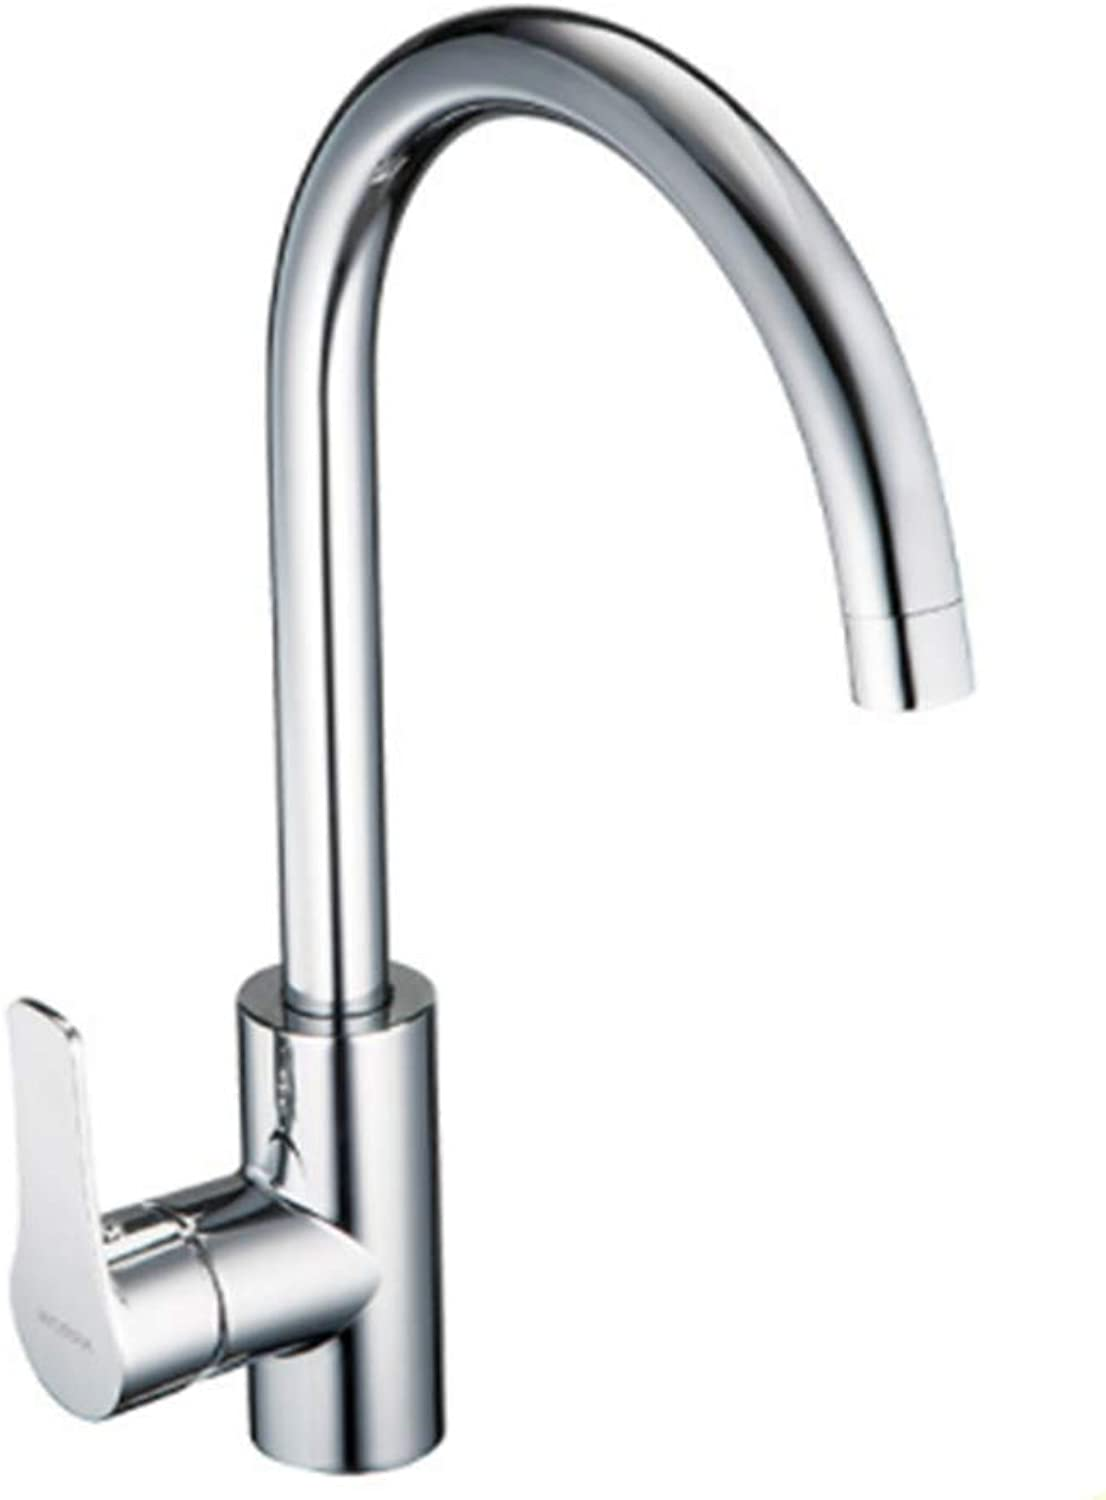 Kitchen Faucet Tapstainless Steelkitchen Faucet Prosingle Bath Faucet Flutters Can Be Turned Into Single Tap Faucets by Throwing Them Into The Kitchen Faucet.